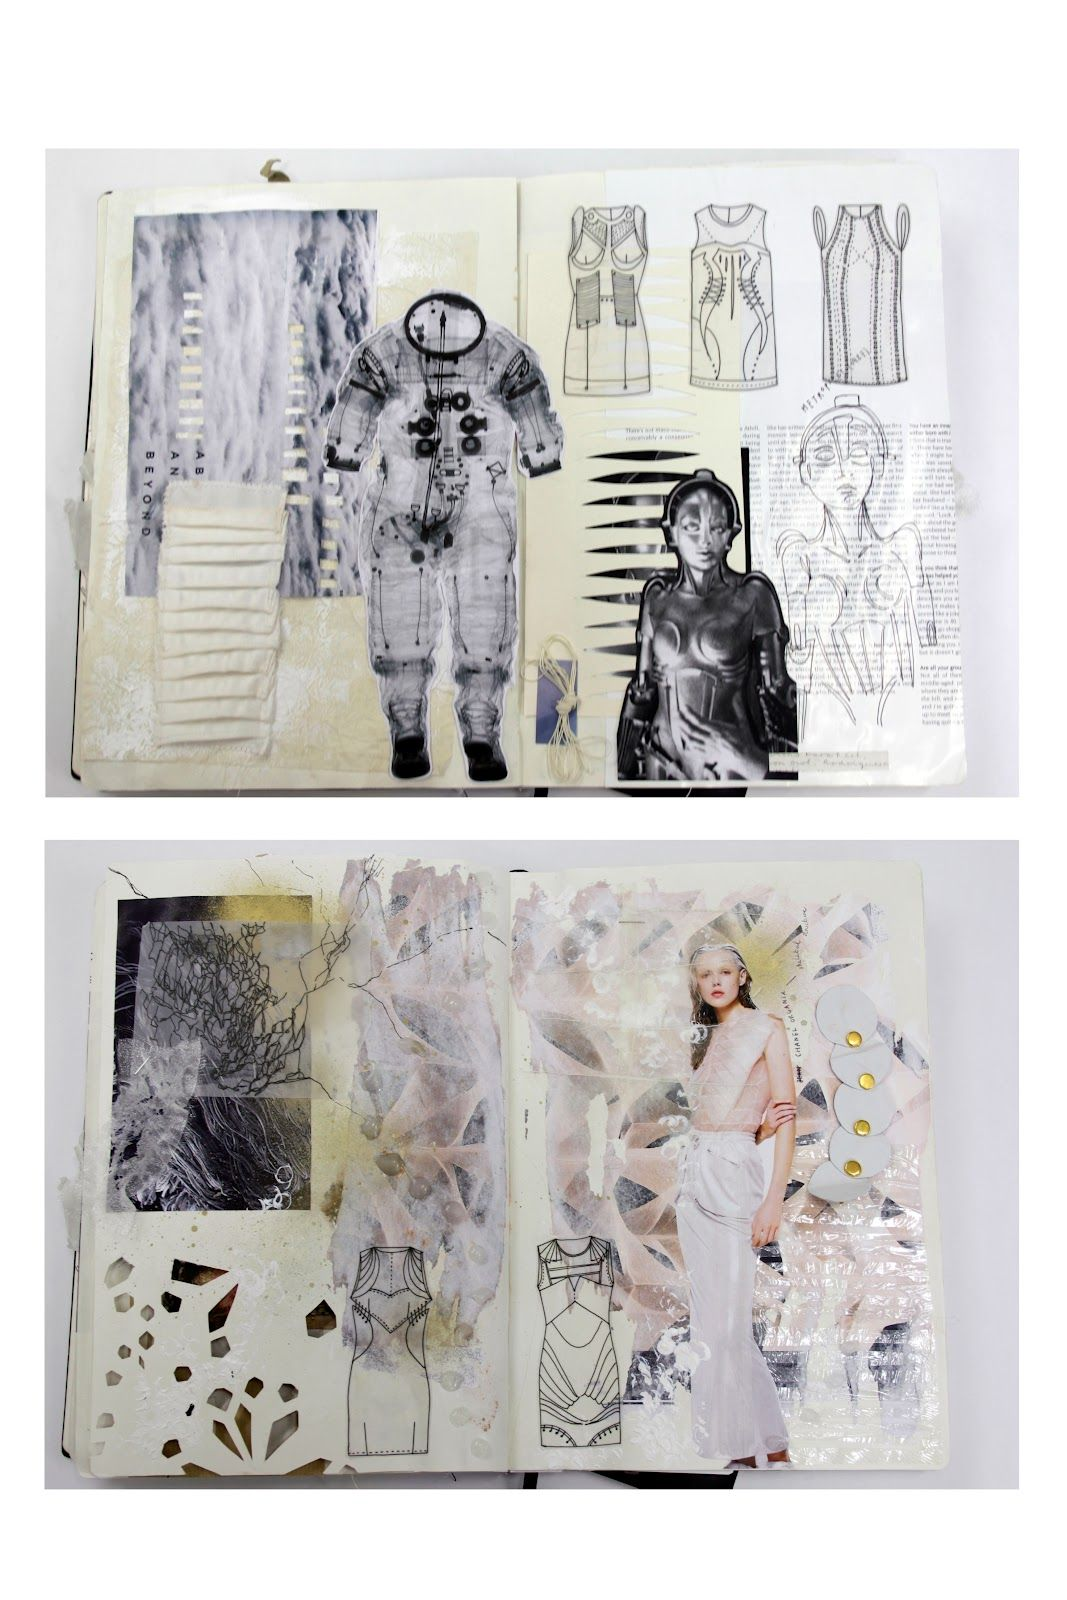 Fashion Sketchbook Fashion Design Development With Visual Research Sketches Fabric Manipulation Surface Fashion Sketchbook Sketch Book Fashion Portfolio